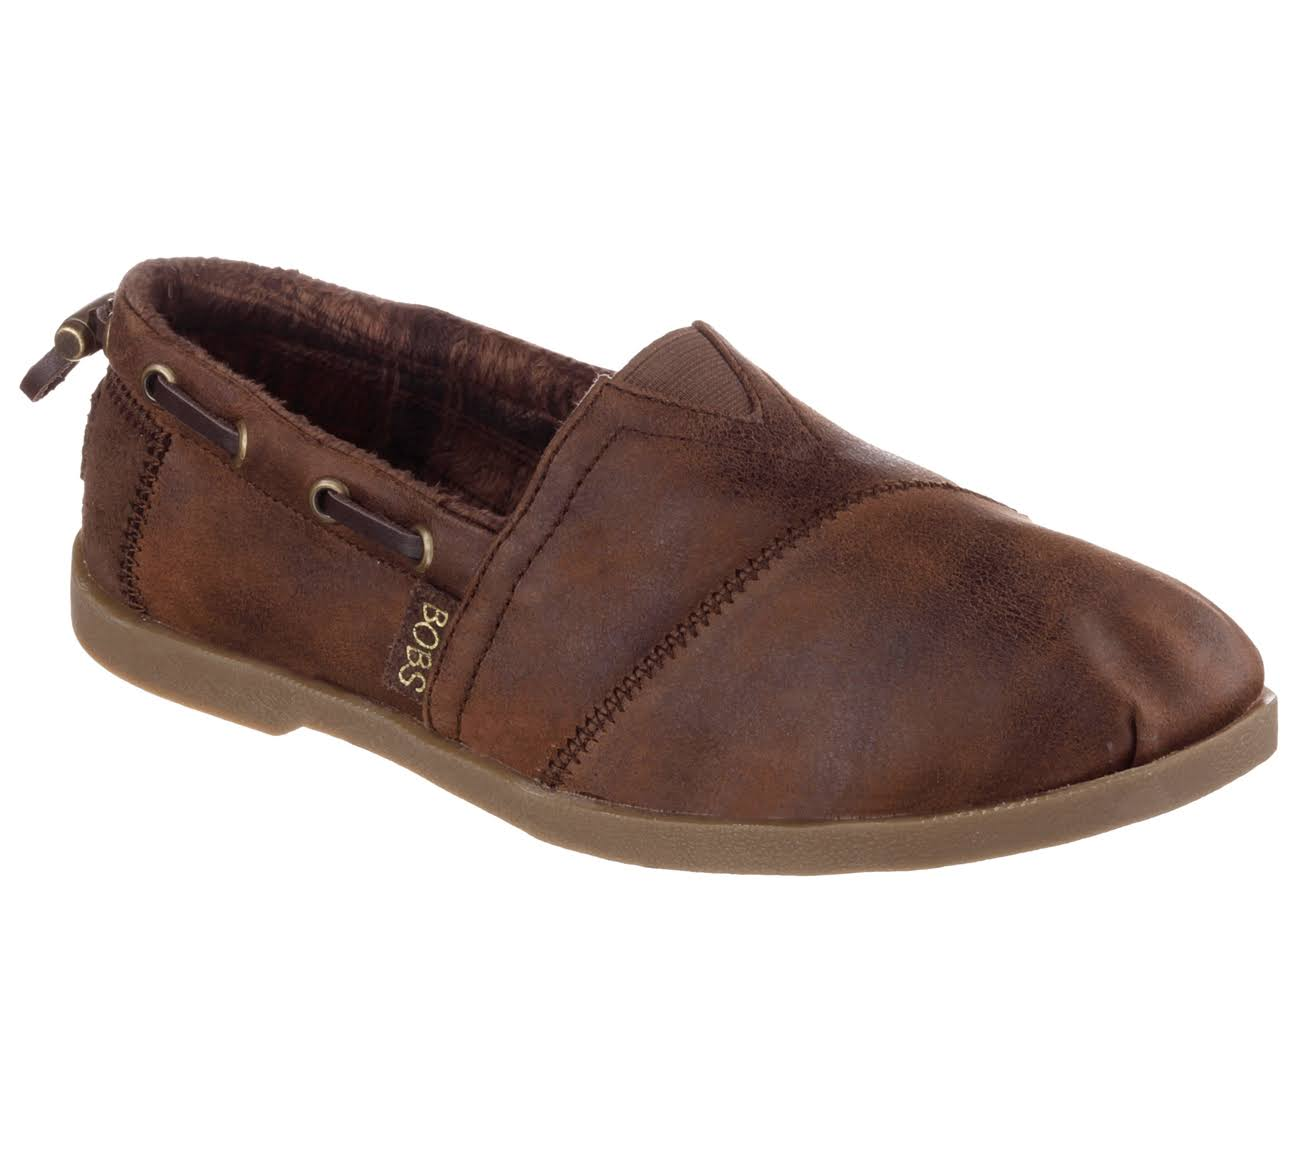 Skechers Bobs Chill Luxe-Buttoned Up 10 Women's Brown